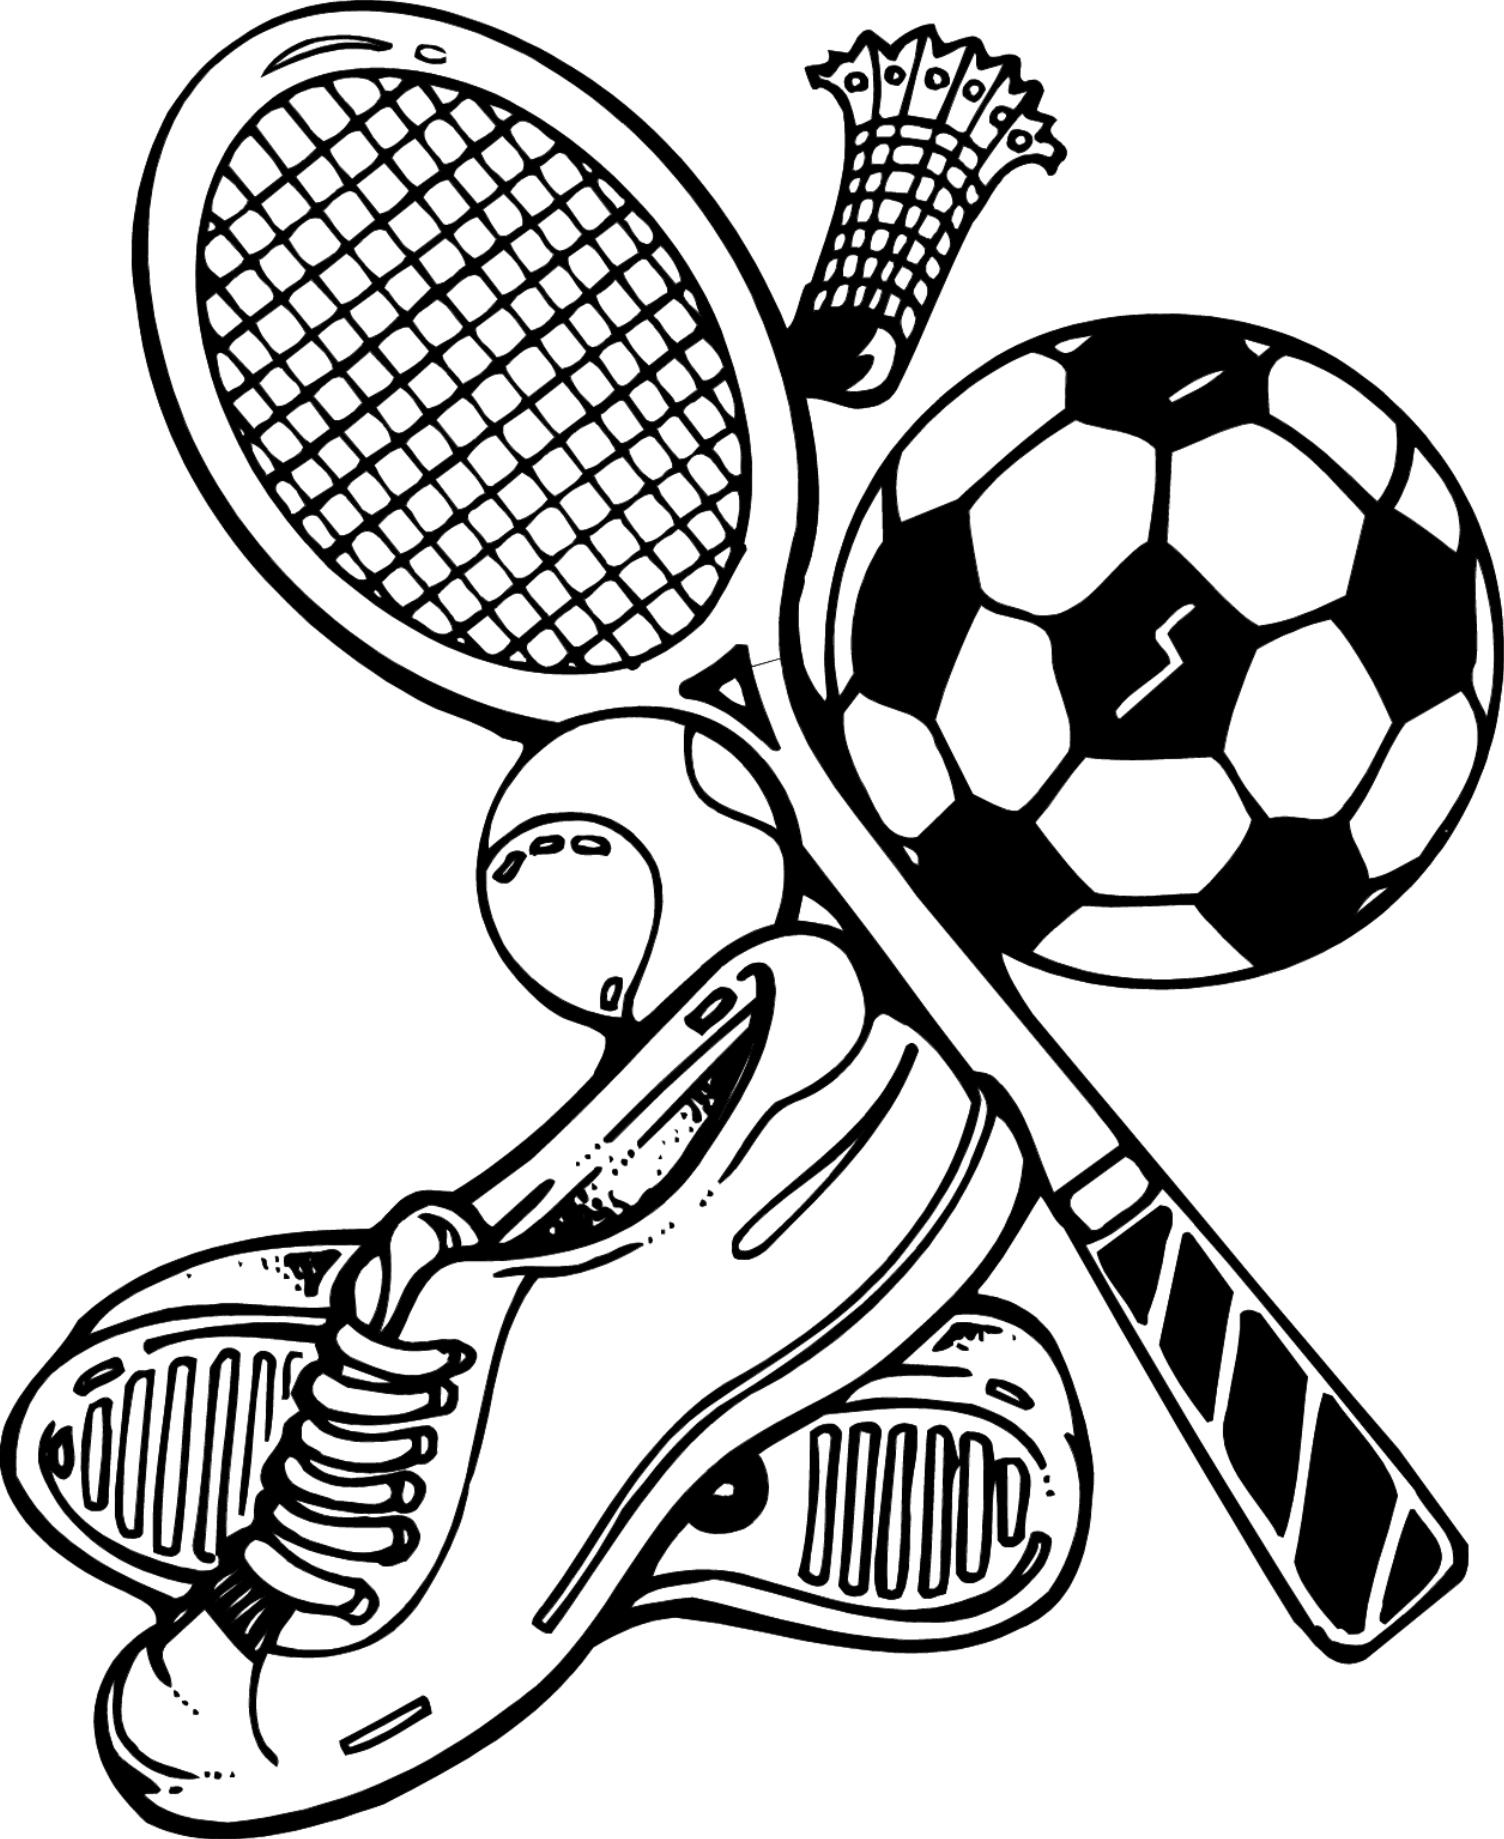 sports day colouring sports coloring pages 8 coloring kids coloring kids day colouring sports